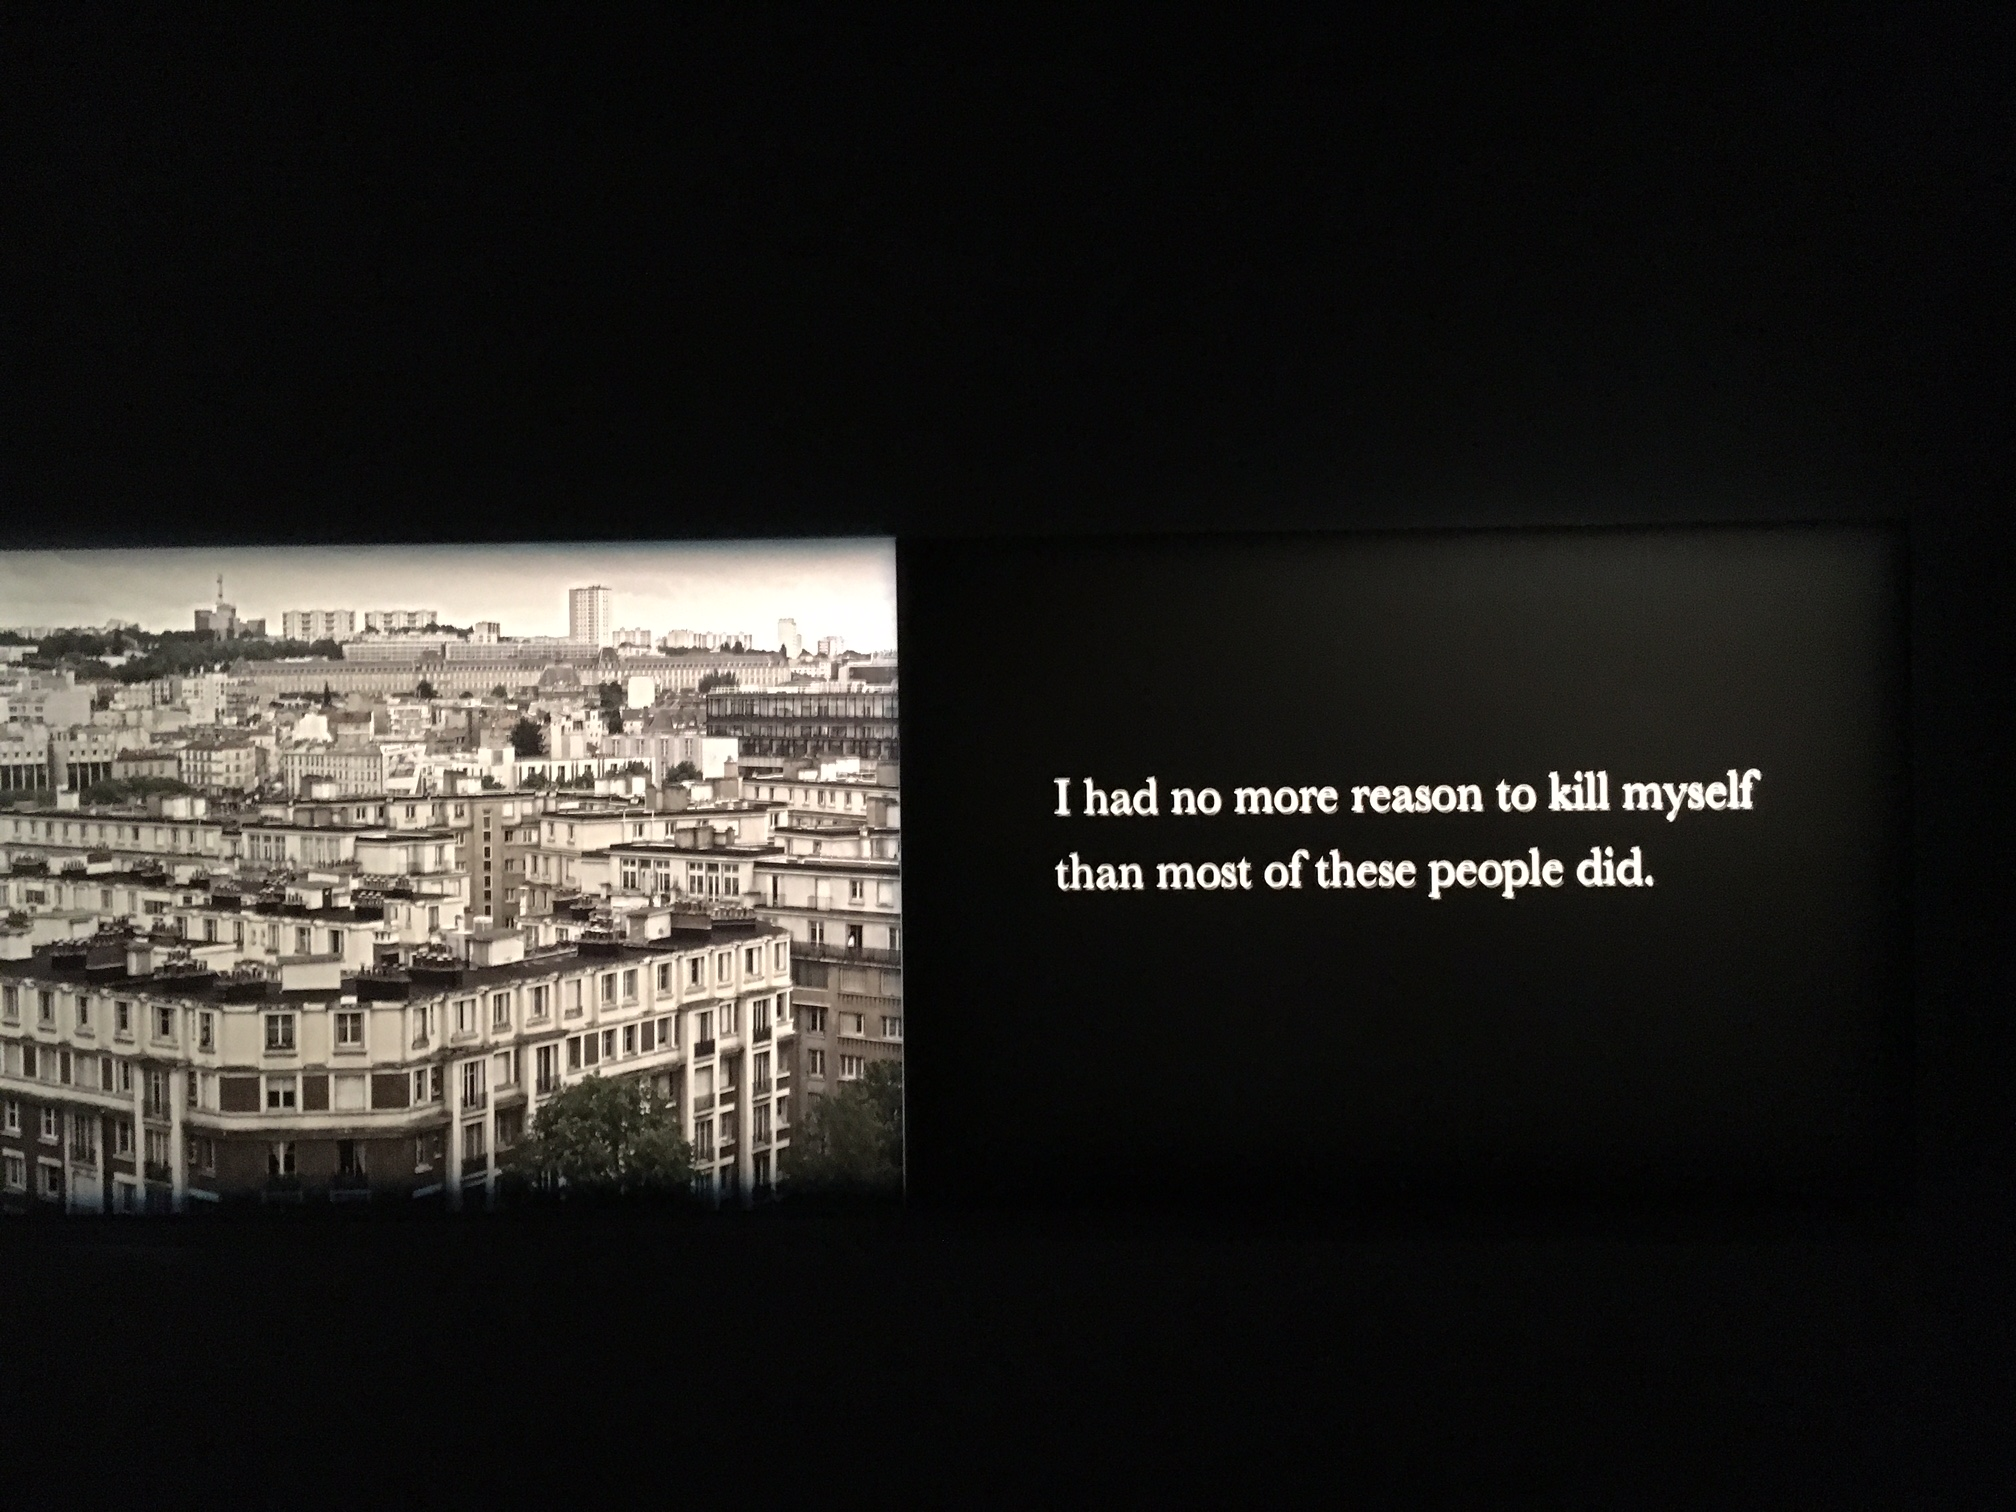 """A phrase from Houellebecq's 2015 novel, Submission: """"I had no more reason to kill myself than most of these people did,"""" on the right panel of a large triptych at """"Michel Houellebecq: French Bashing"""" art exhibit in New York. Photo Credit: Joel Whitney"""